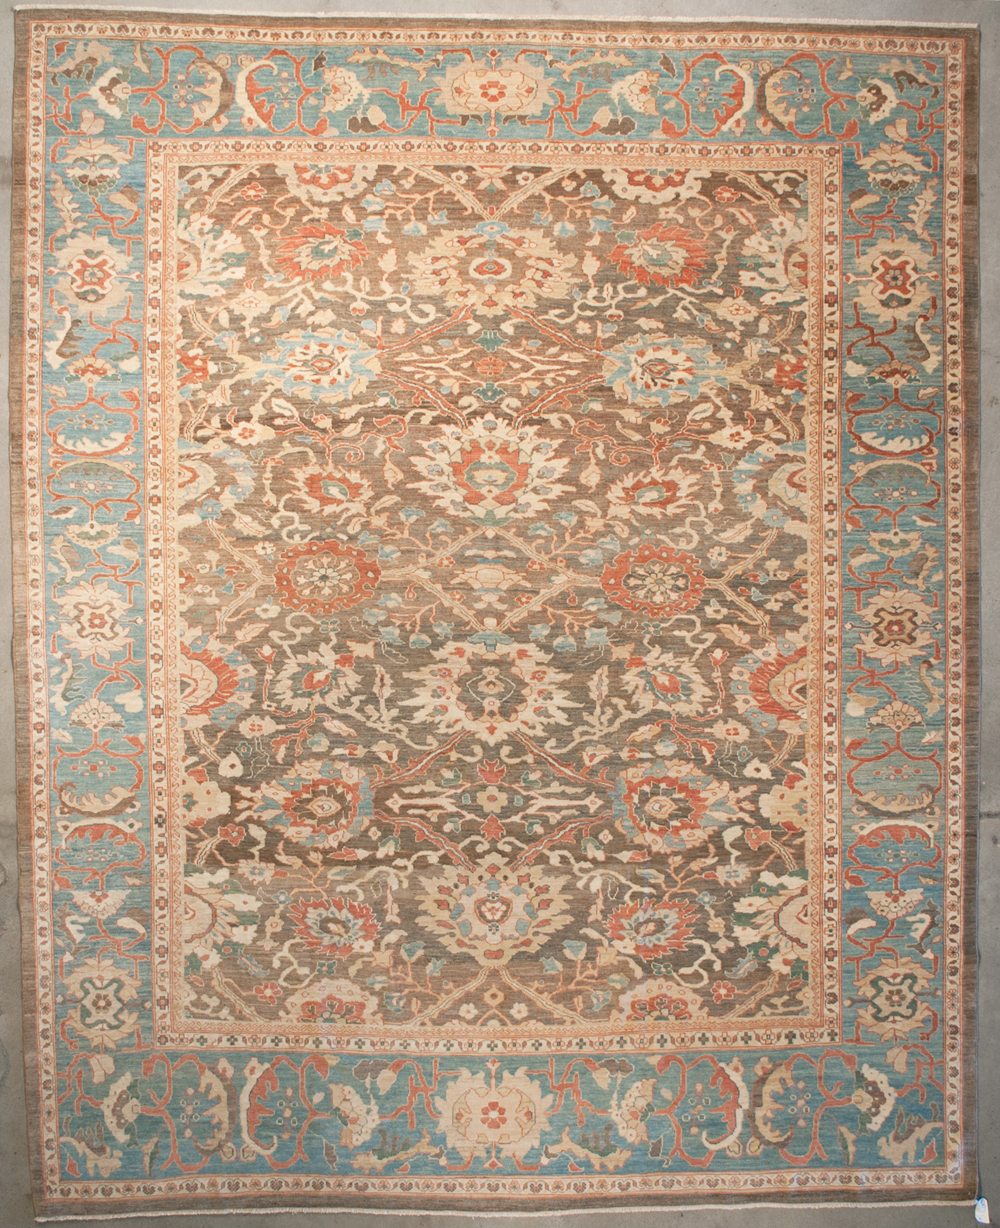 Ziegler & Co. Sultanabad Rug oriental carpet rugs and more 35456-